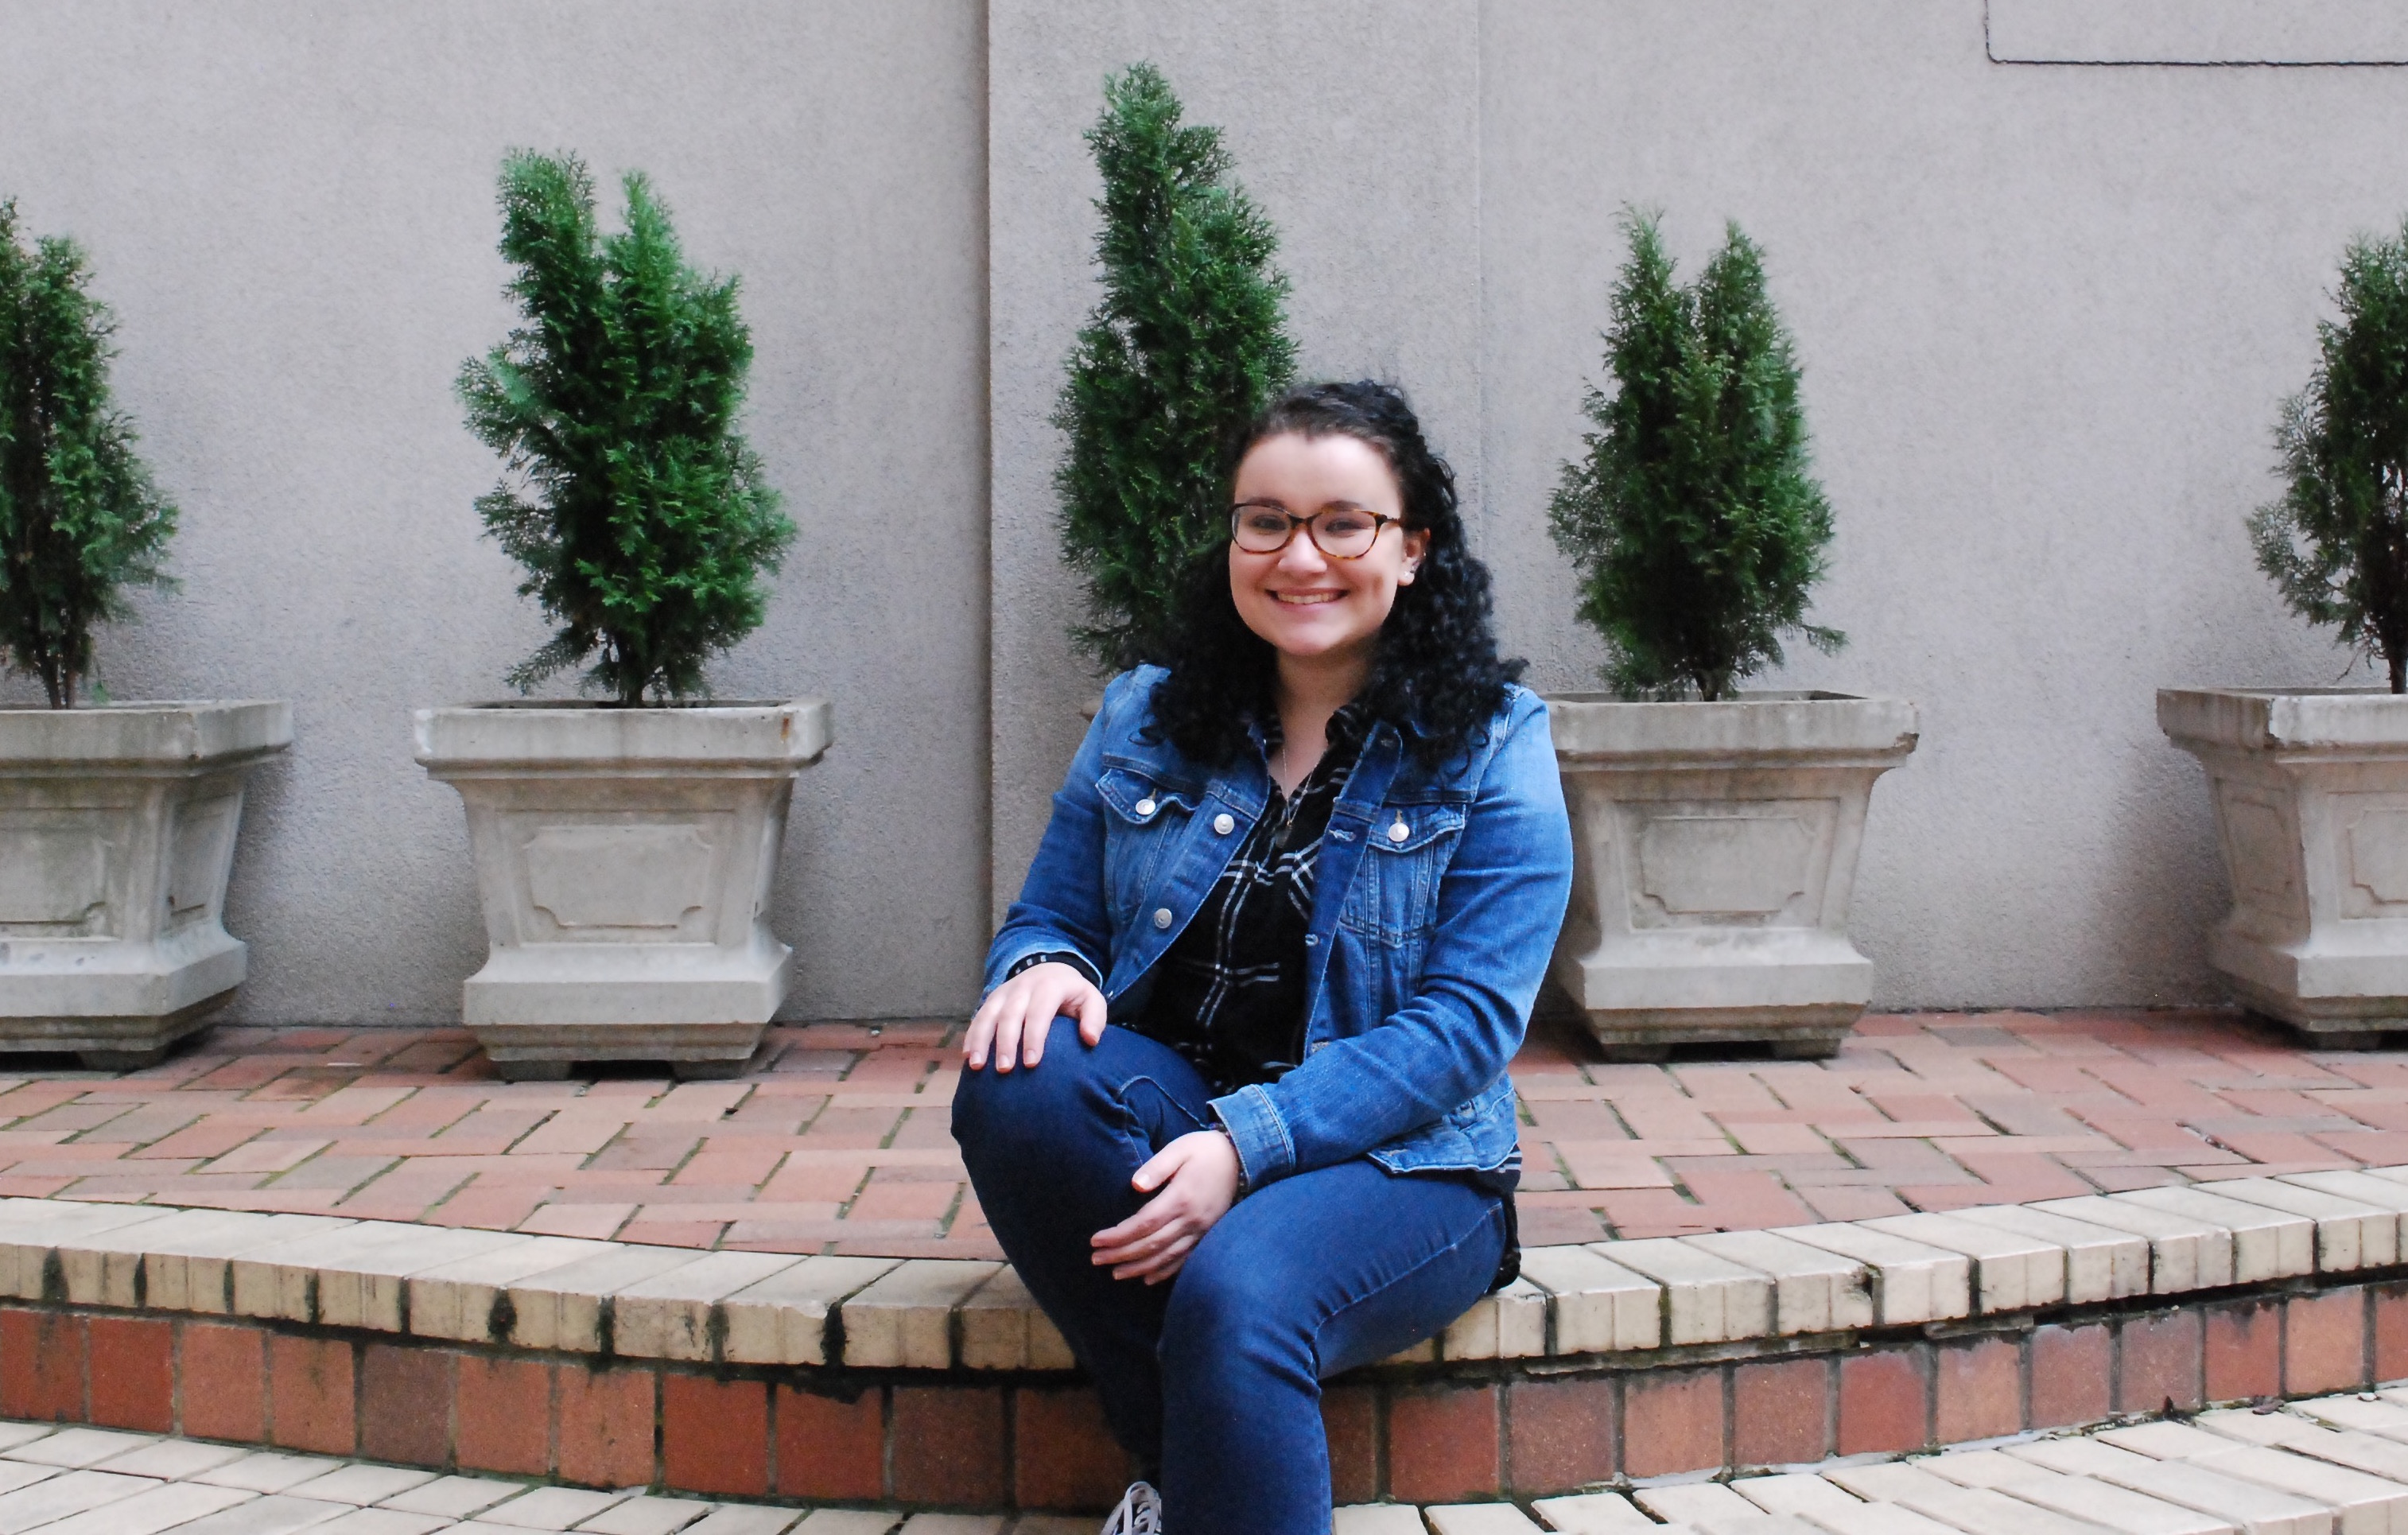 Pictured is Patty Sorg, Criminal Justice Major